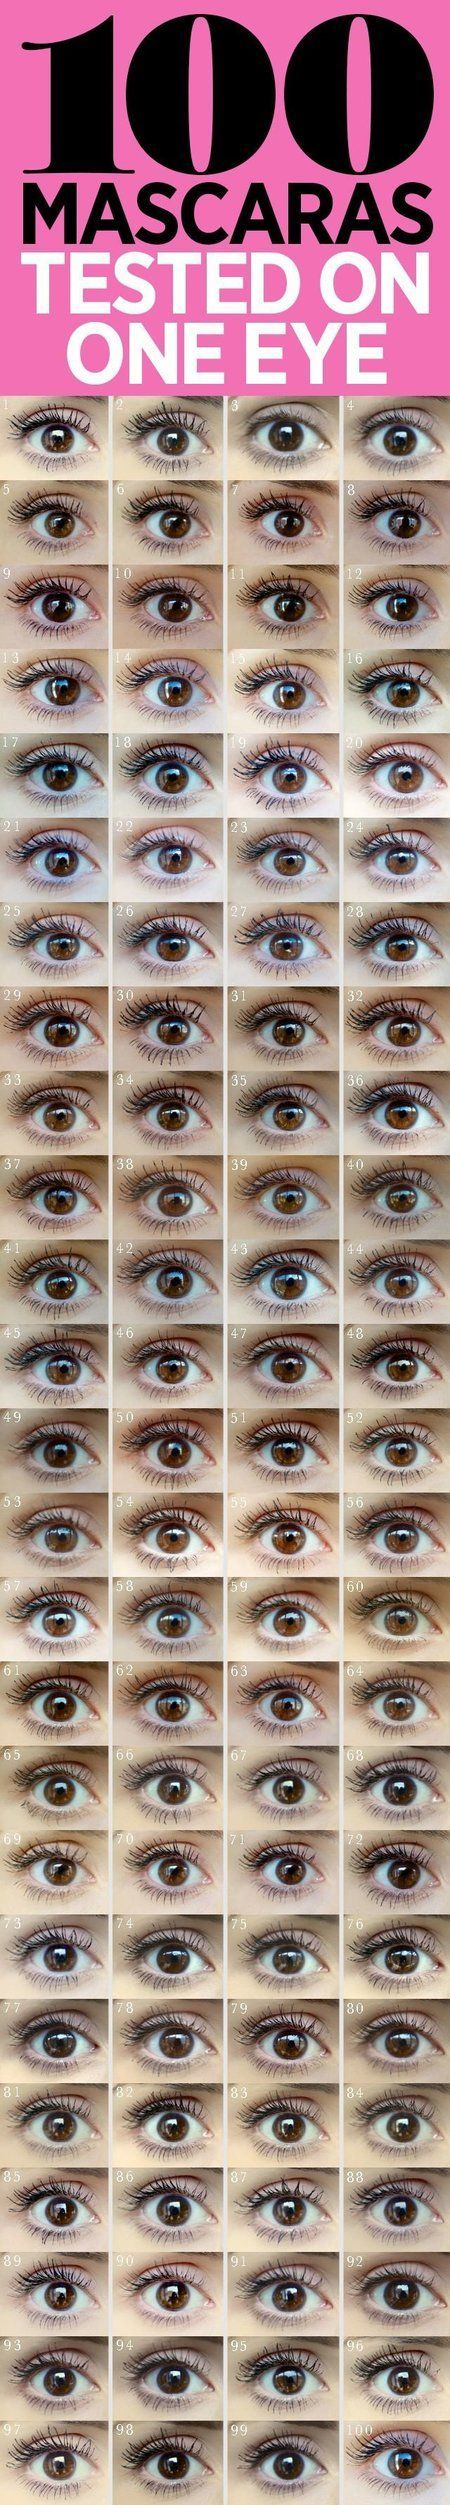 100 mascaras tested on ONE eye: picture reviews - #mascara #mascarareview #mascaratip #cosmopolitan